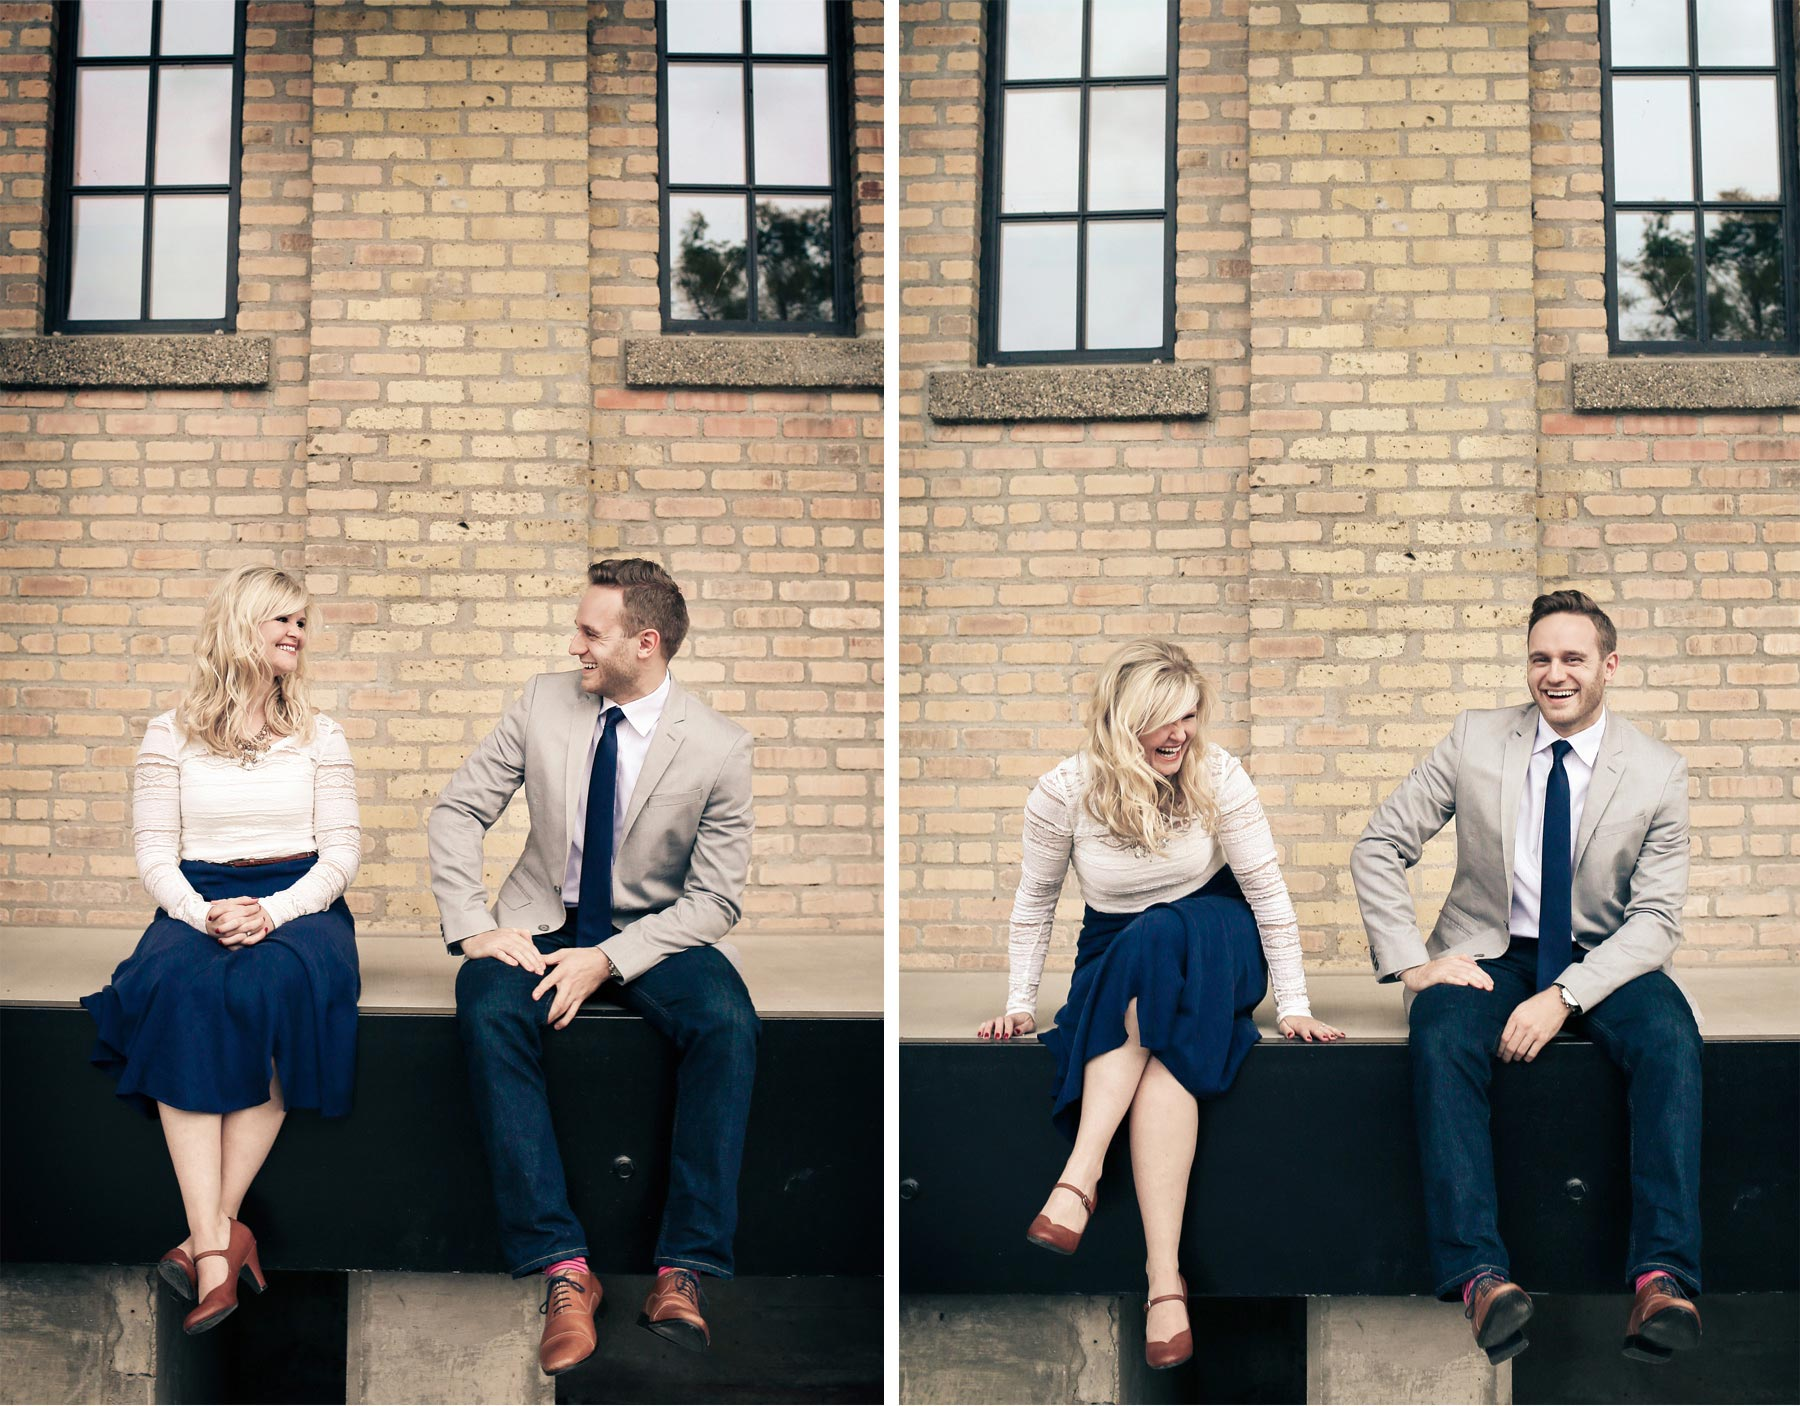 01-Minneapolis-Minnesota-Wedding-Photographer-by-Andrew-Vick-Photography-Fall-Autumn-Engagement-Bride-Groom-Downtown-Vintage-Mallory-and-Kyle.jpg